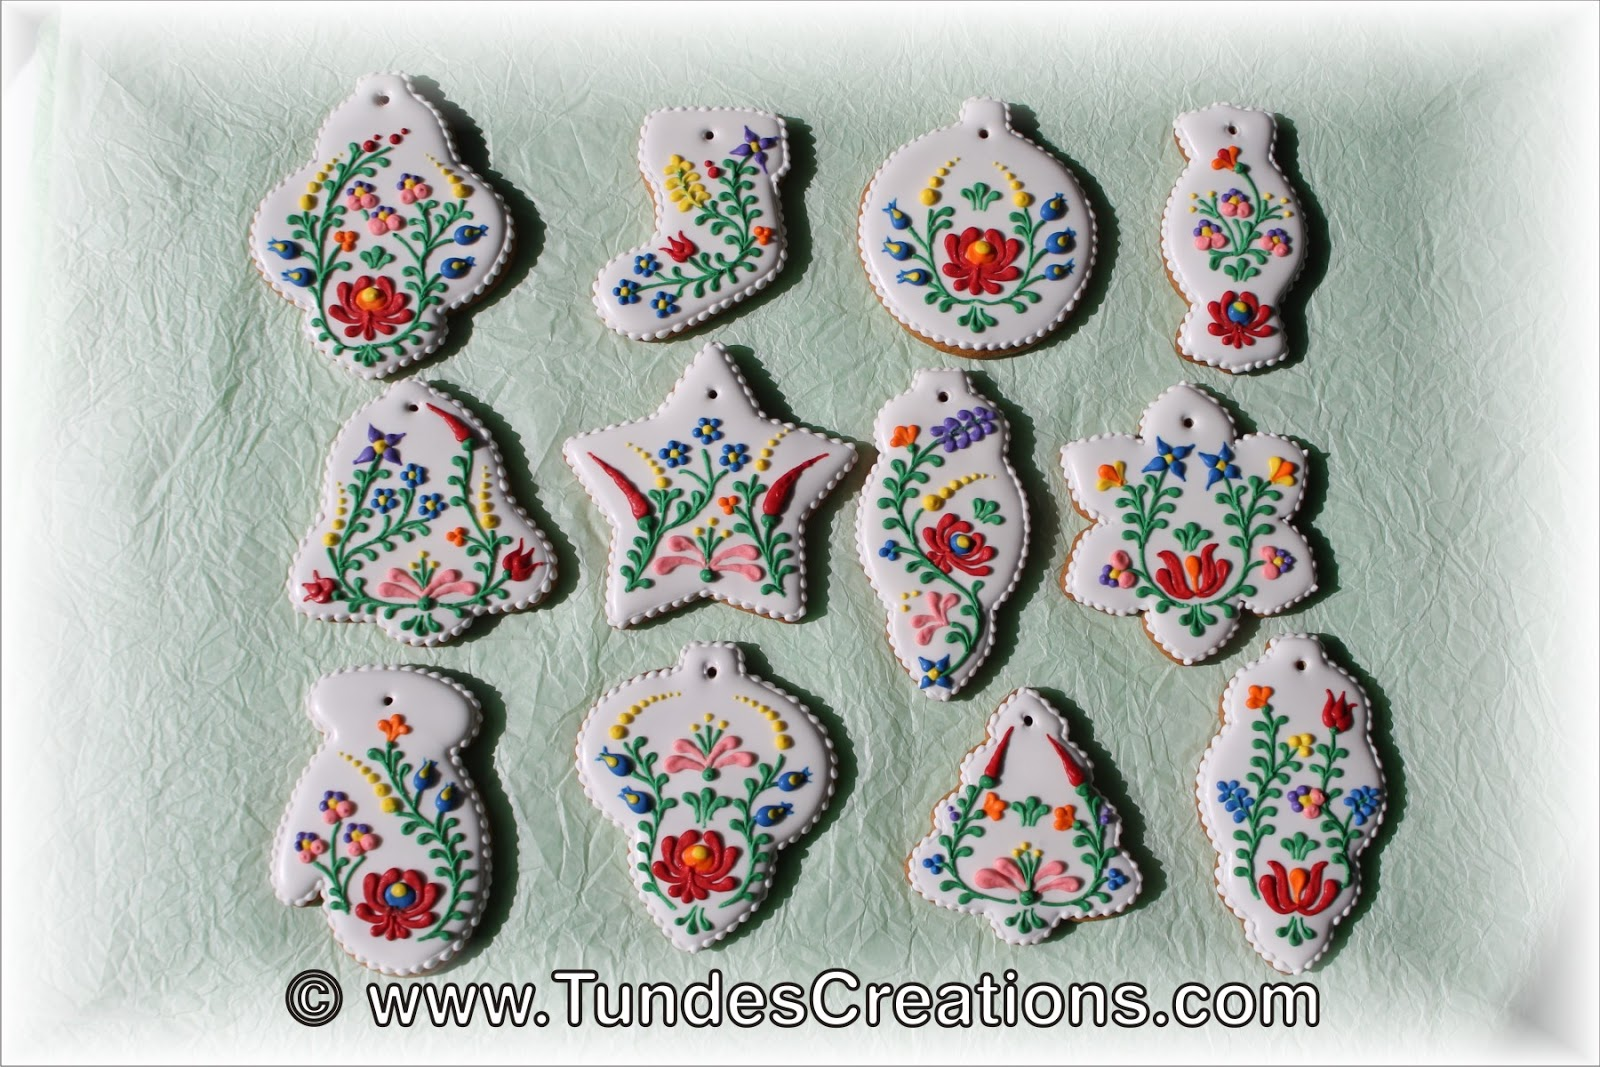 The Gingerbread Artist: Christmas cookies with Hungarian folk art ...